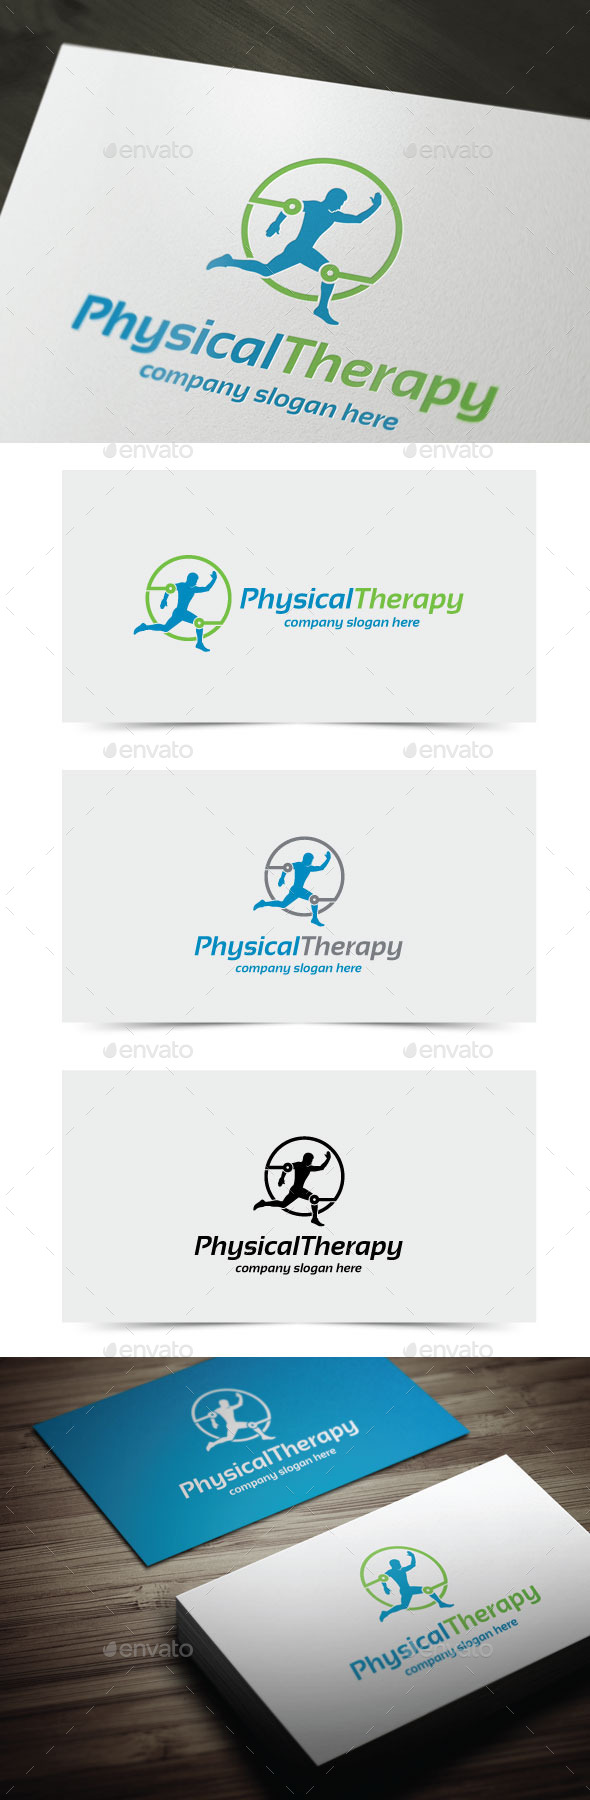 GraphicRiver Physical Therapy 11496749